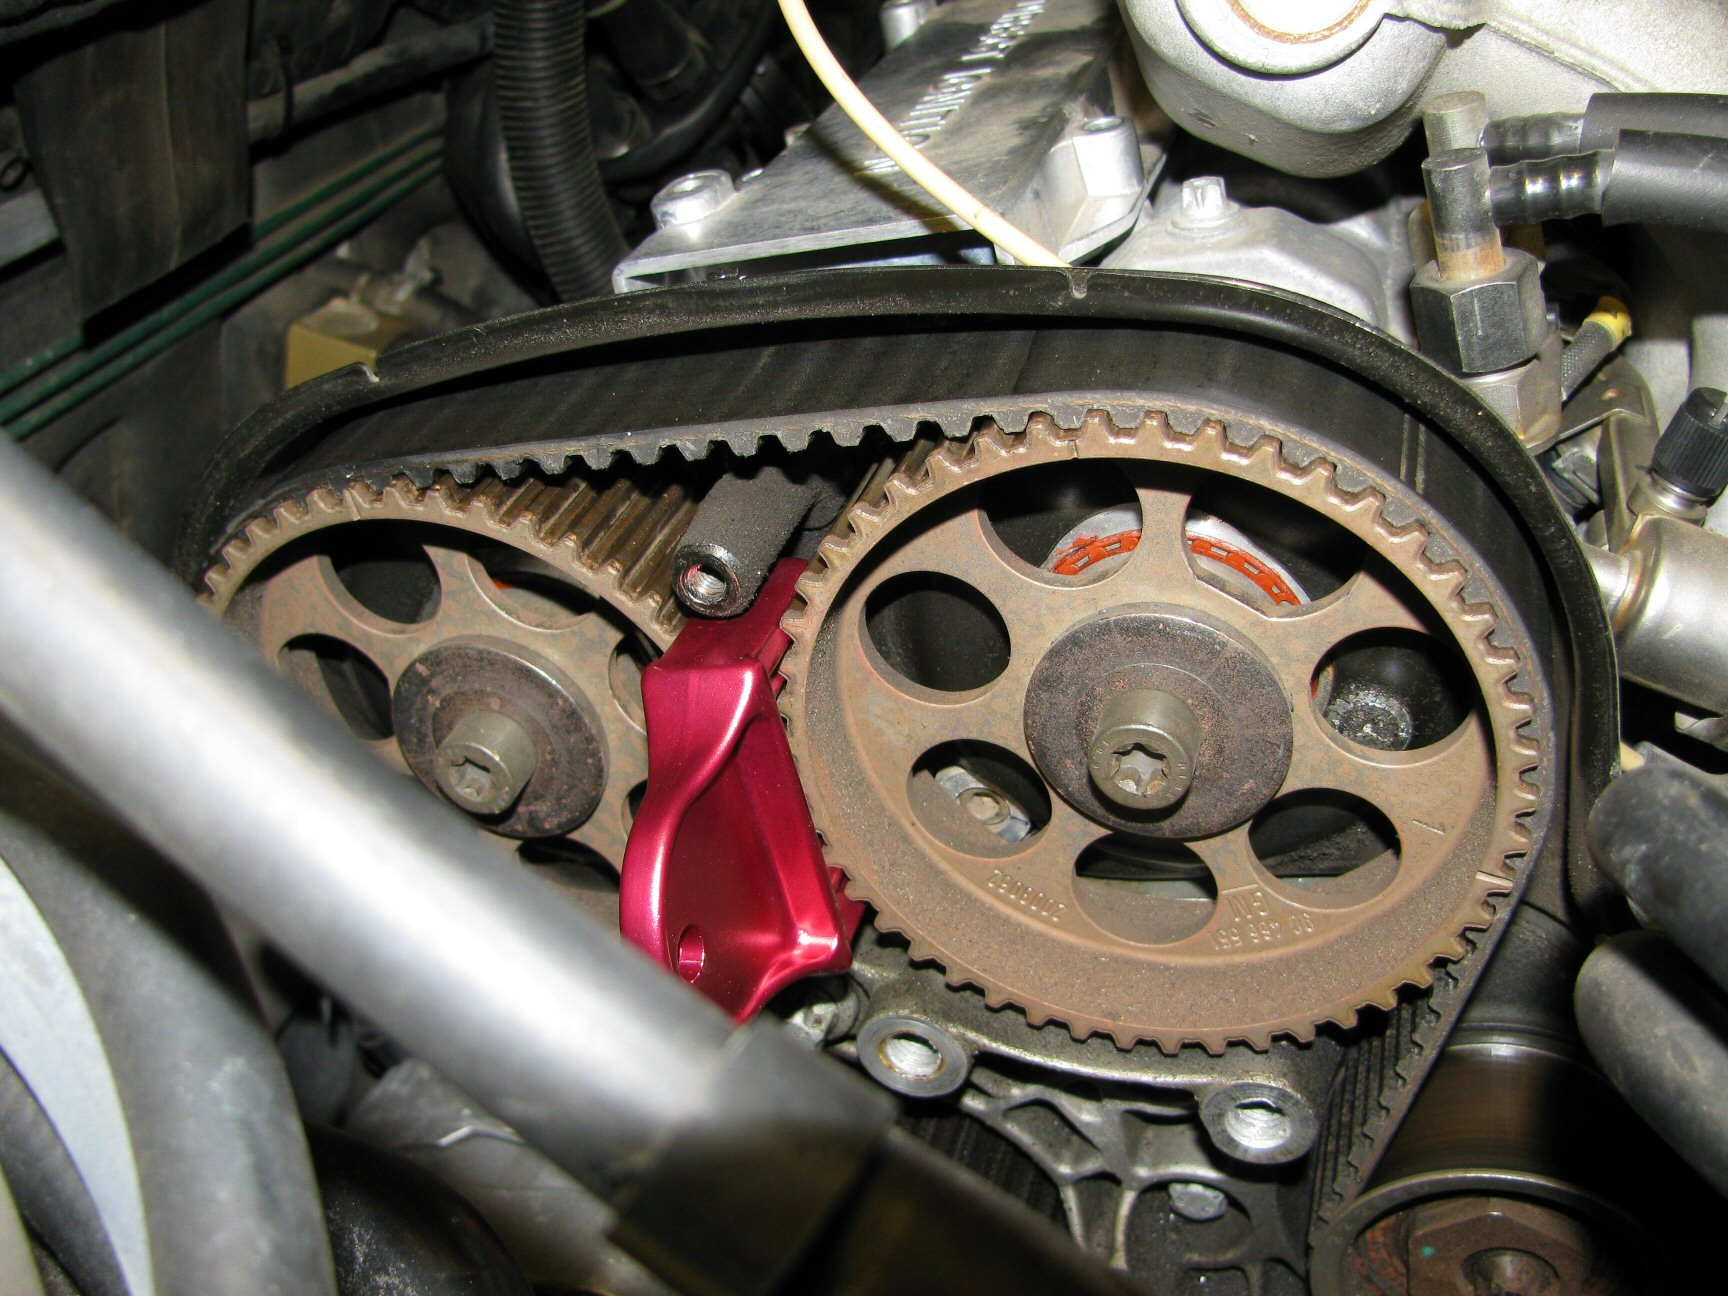 Camshaft pulleys 1 (left) and 2 (right).